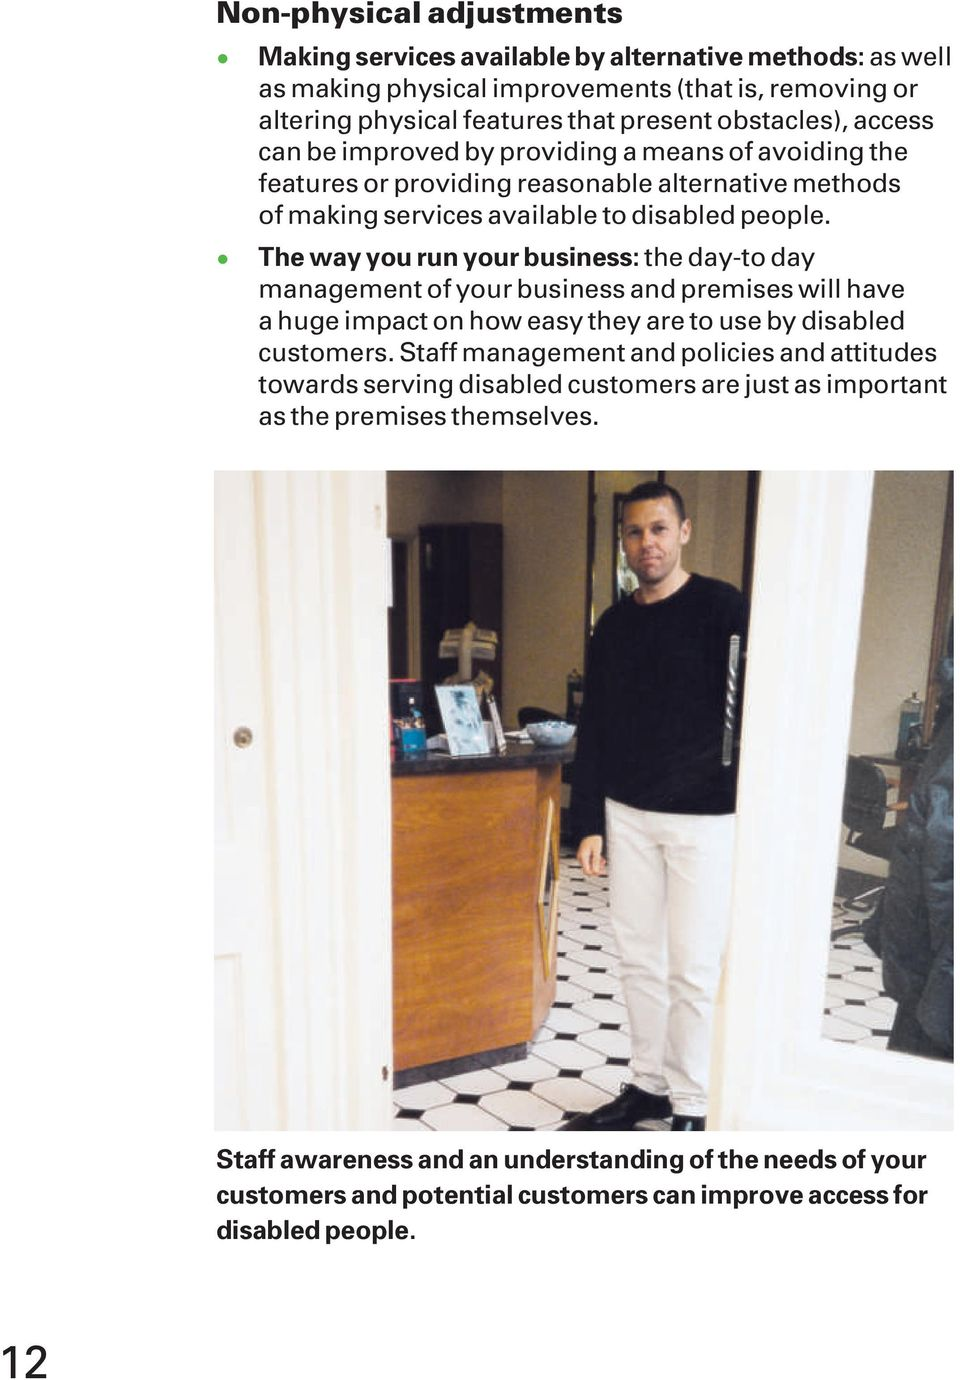 The way you run your business: the day-to day management of your business and premises will have a huge impact on how easy they are to use by disabled customers.